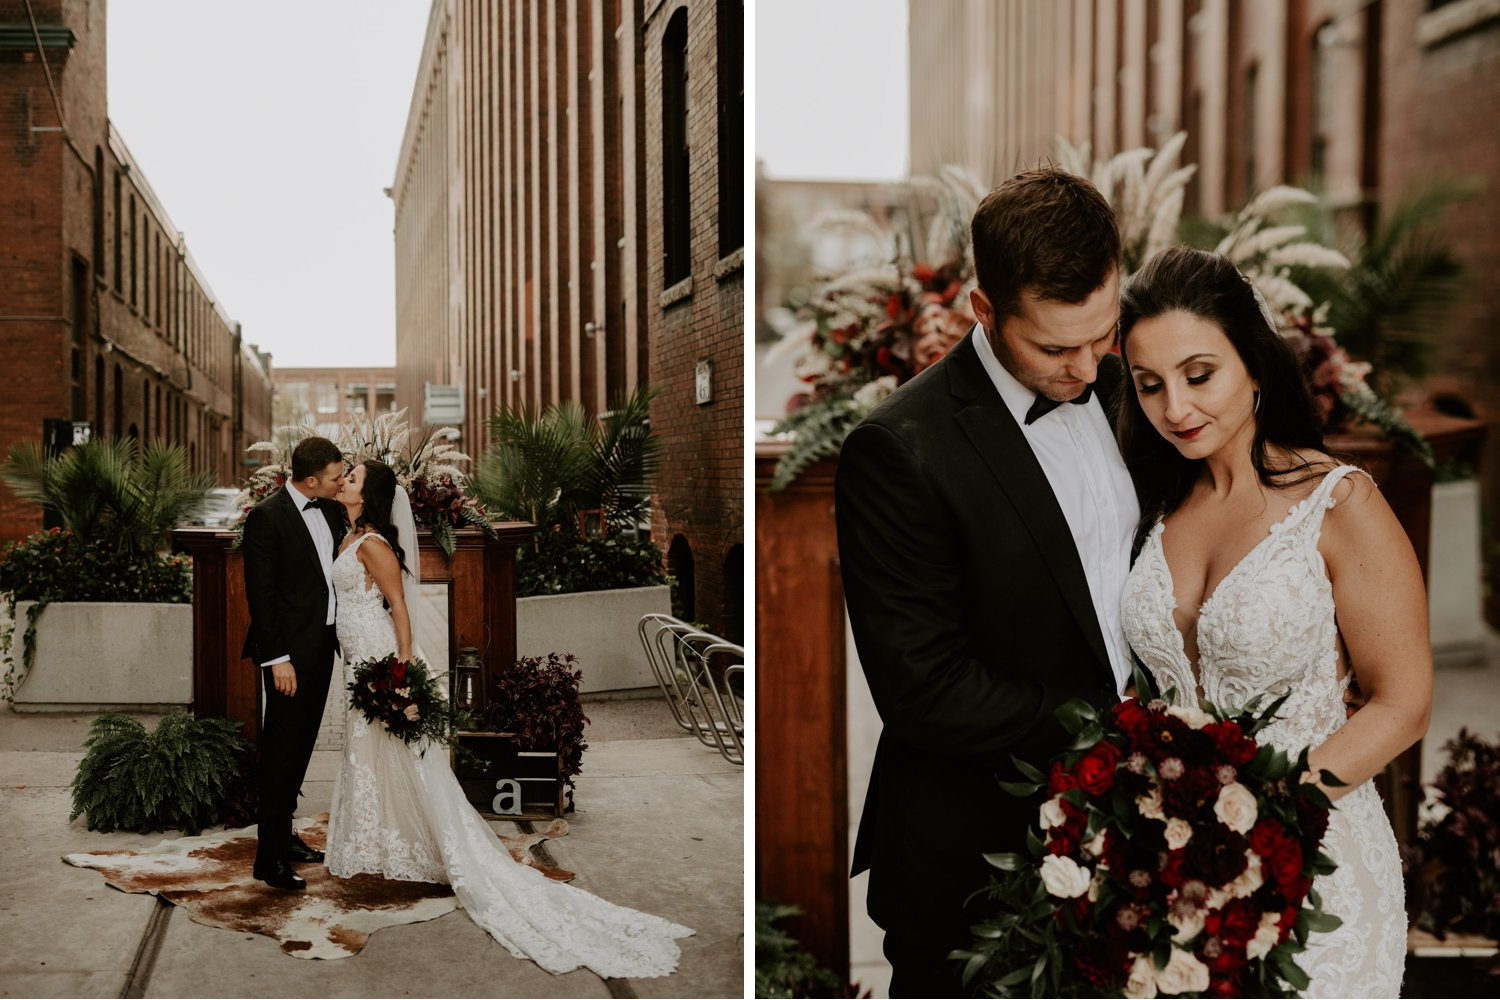 Liberty Village Wedding - bride and groom portraits at outdoor alter